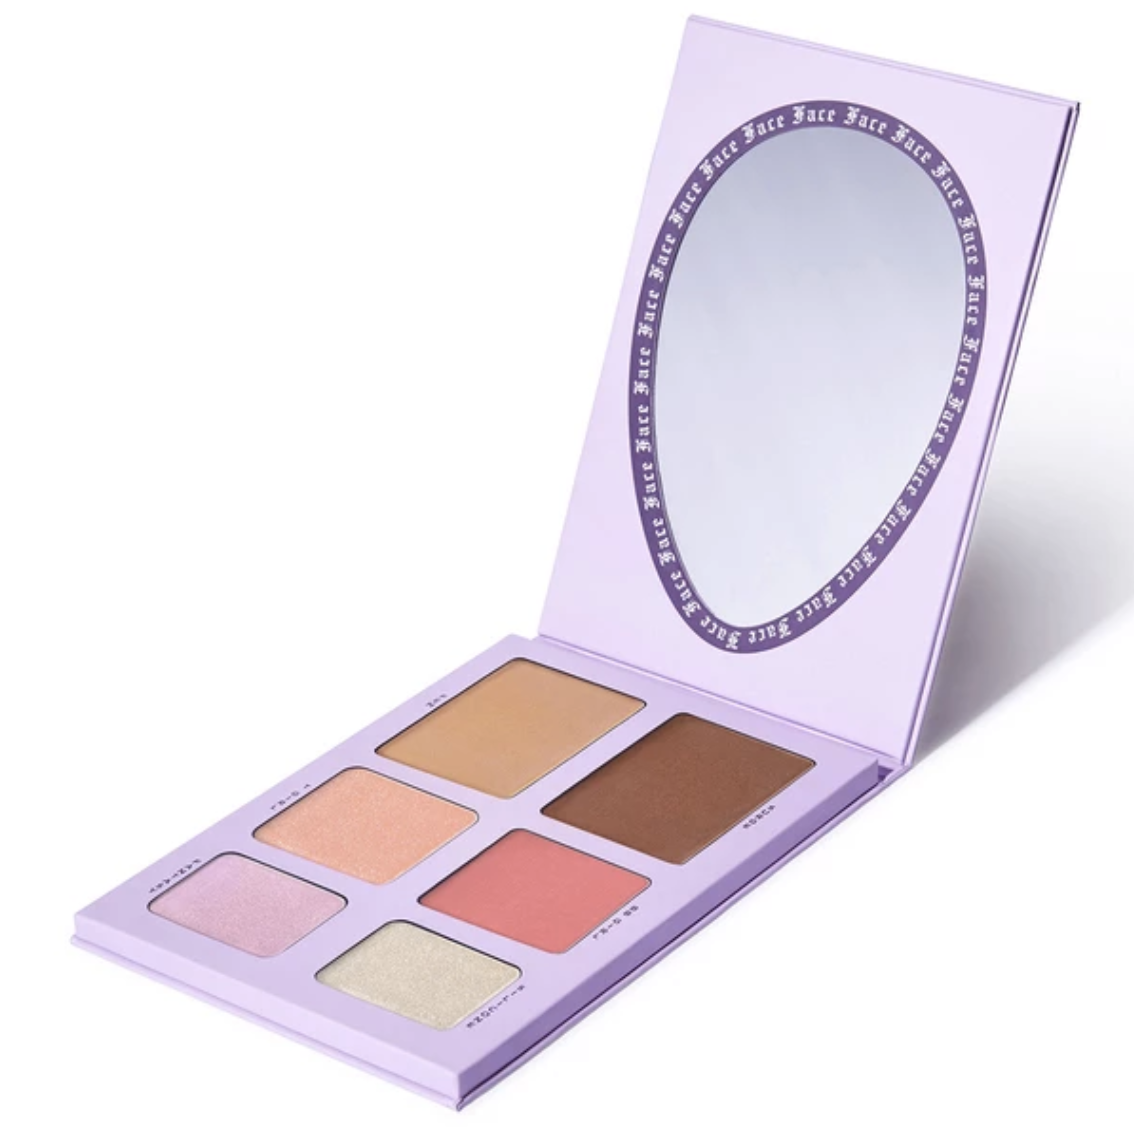 Dragun Beauty Face Palette